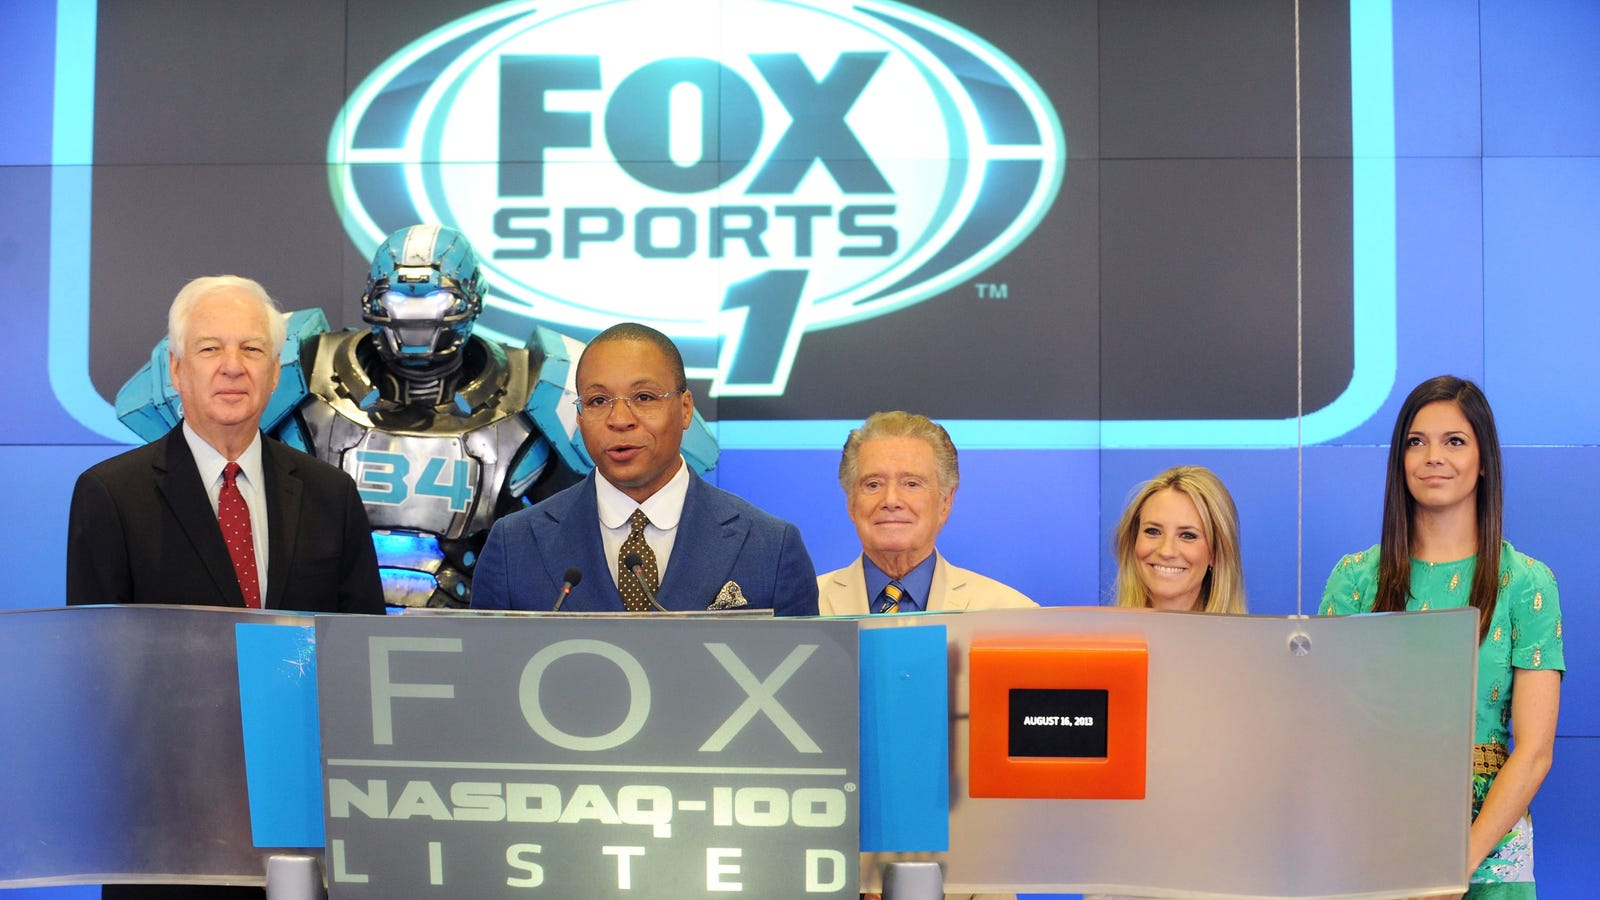 R Fox Sports You Will Not Be...